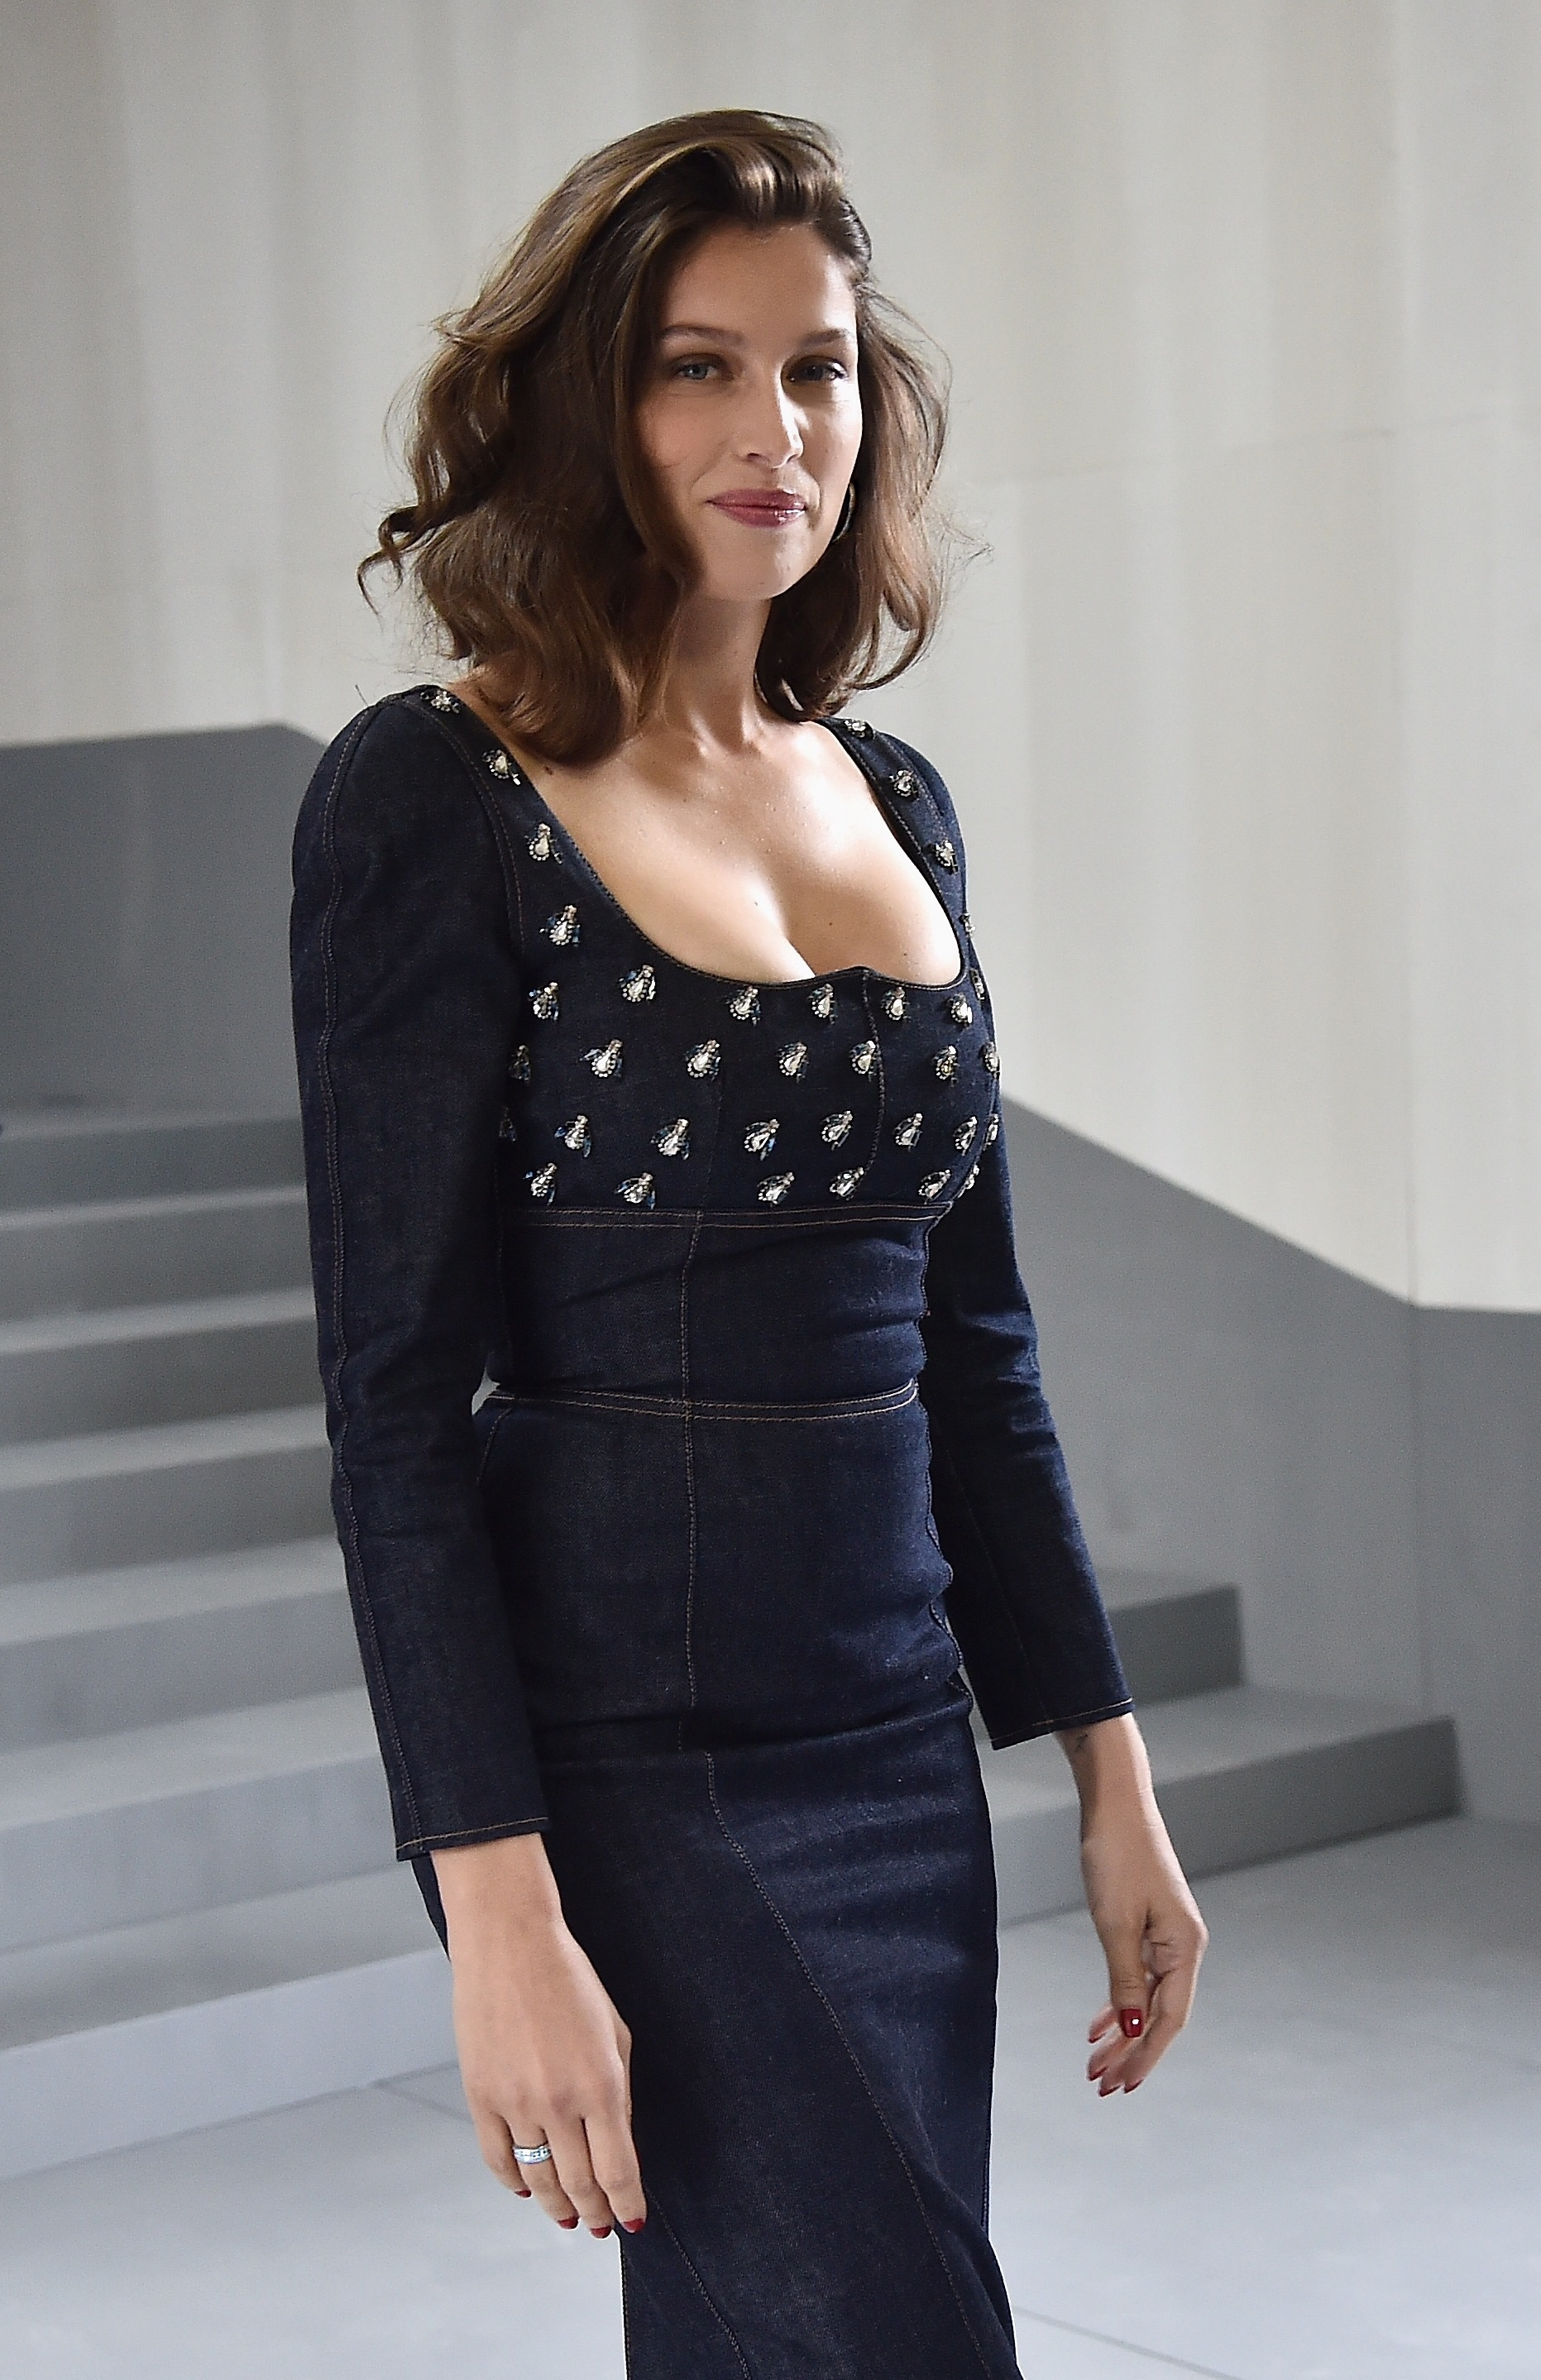 PARIS, FRANCE - SEPTEMBER 30  Laetitia Casta attends the Christian Dior  show as part 8b087e8aebd0